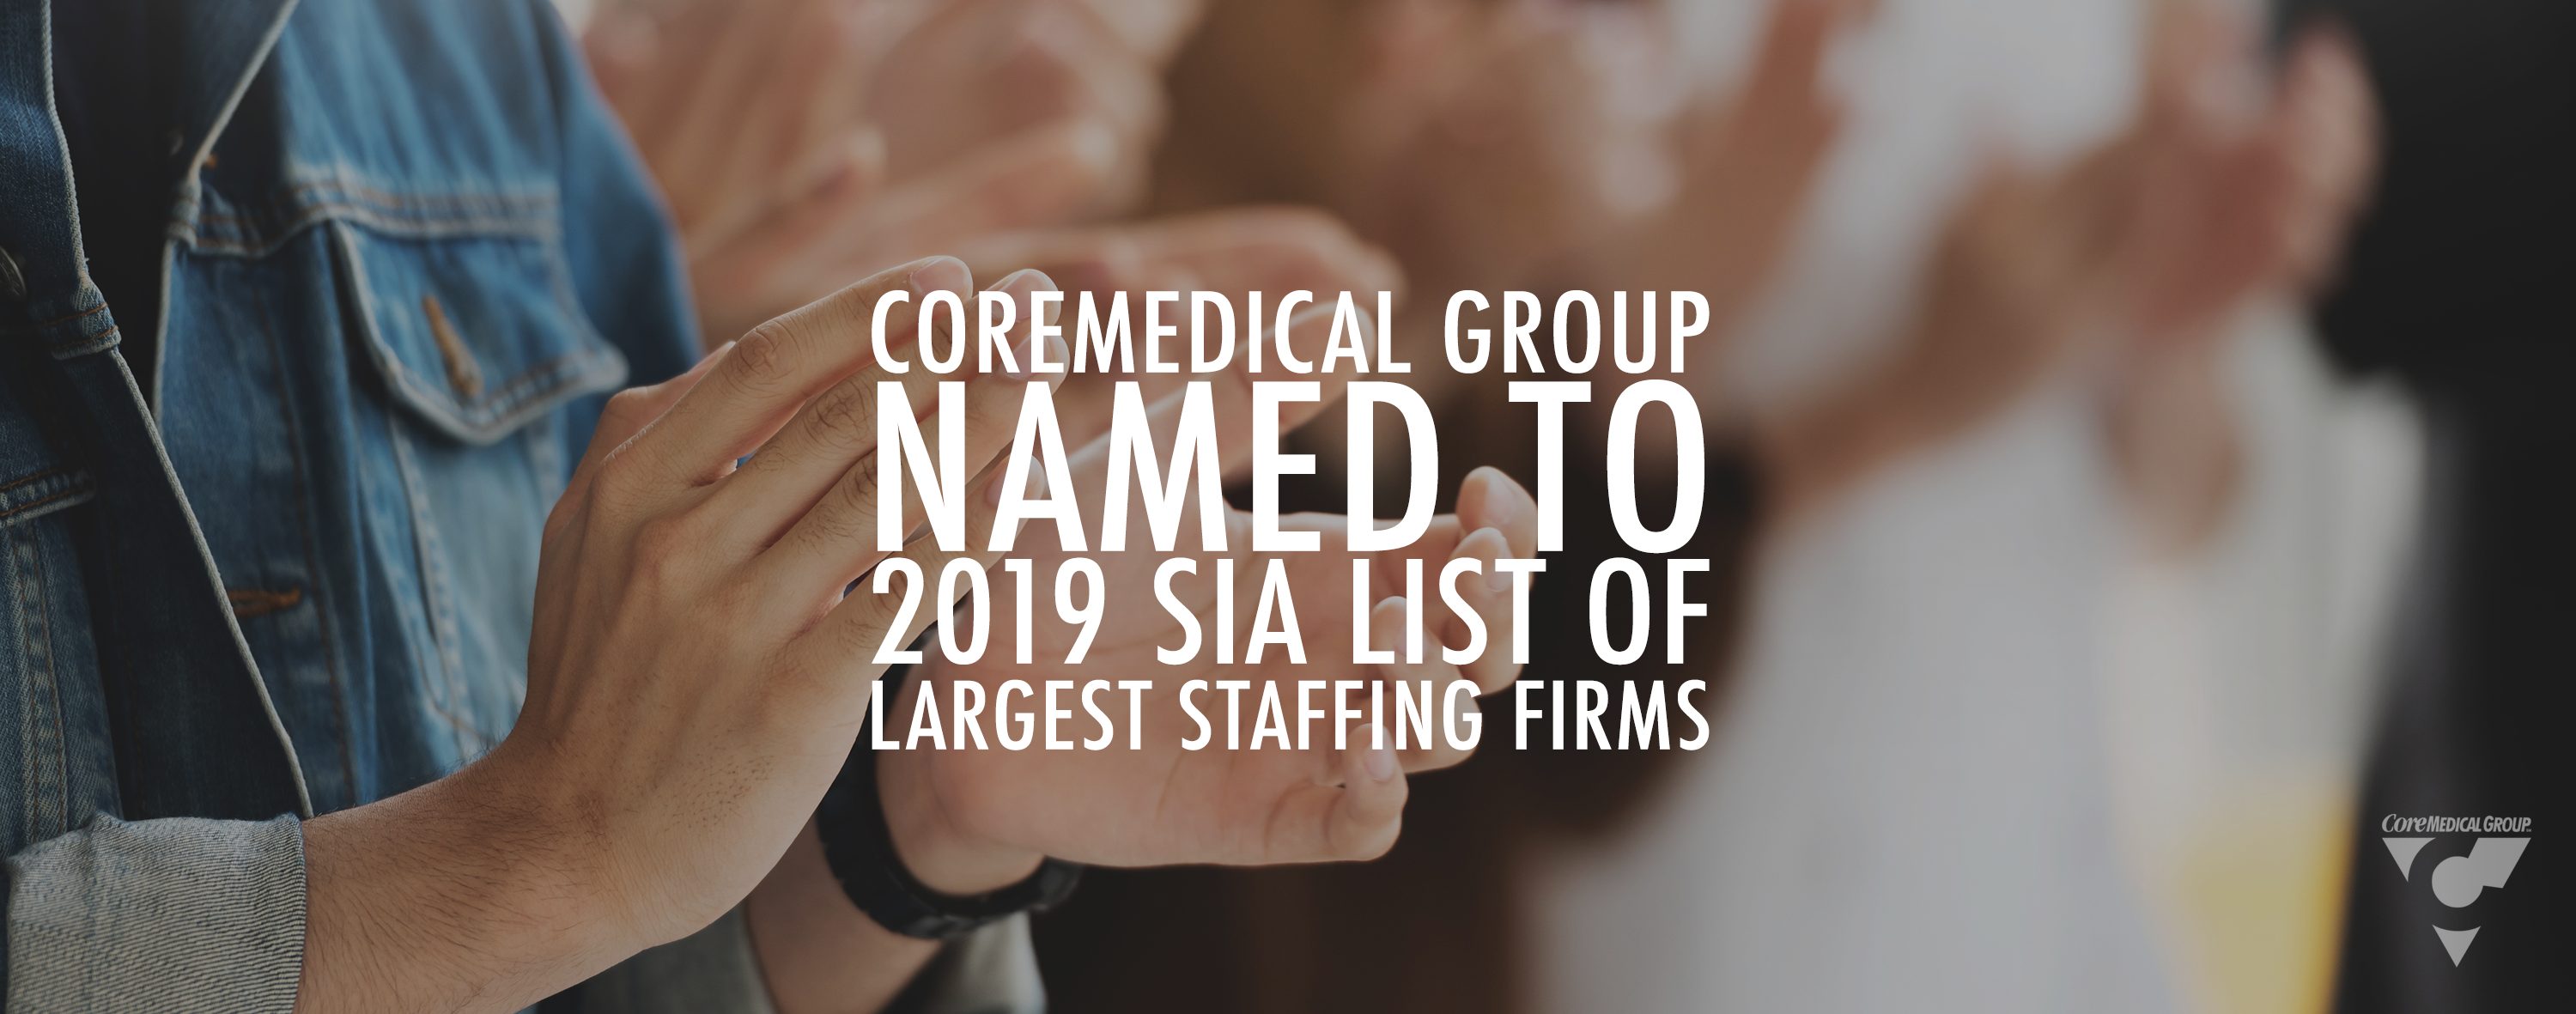 CMG_Blog_FeaturedImages_2019LargestStaffing_R1_09.19_Blog